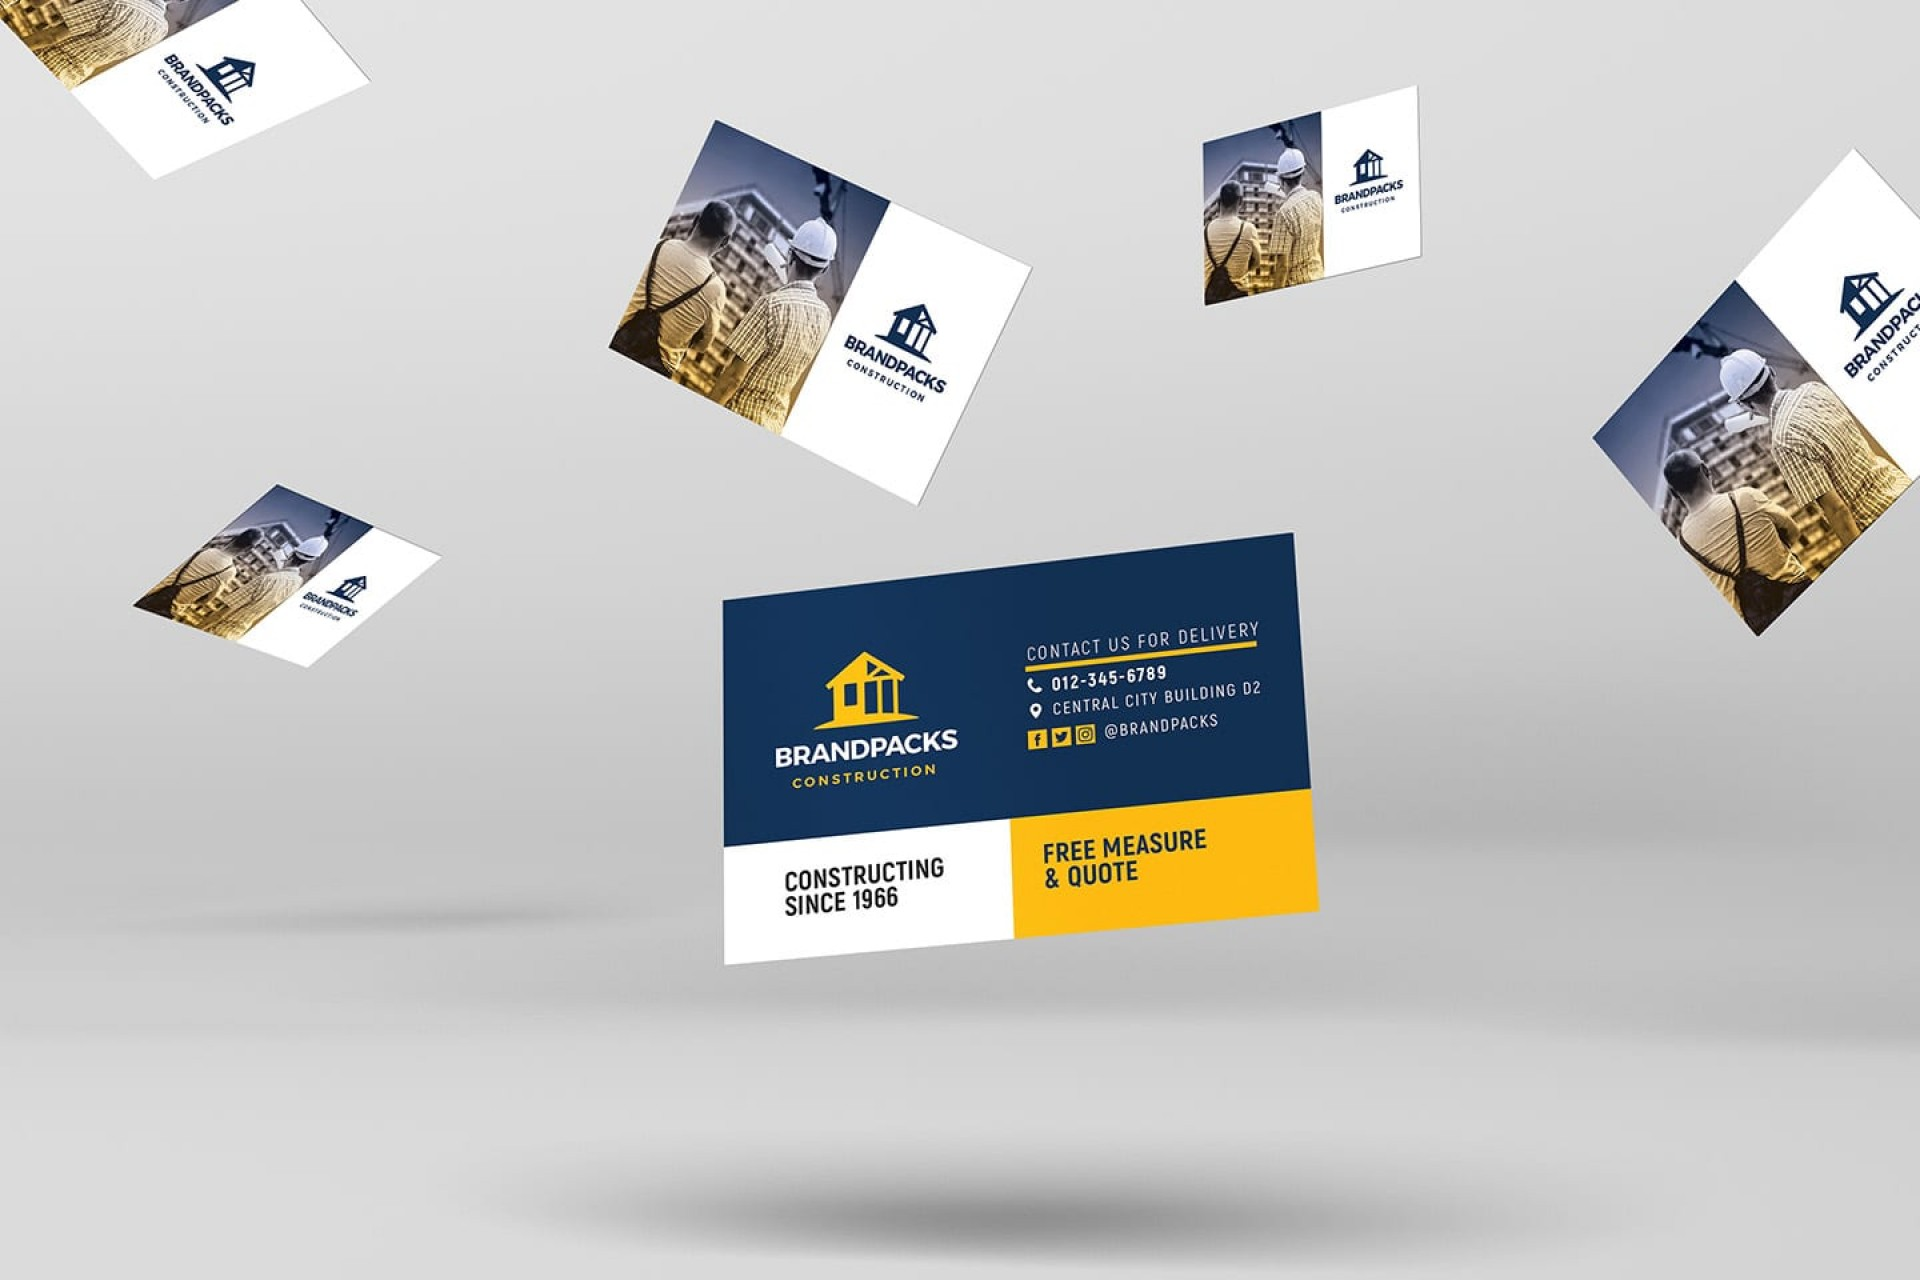 006 Imposing Construction Busines Card Template High Resolution  Templates Visiting Company Format Design Psd1920